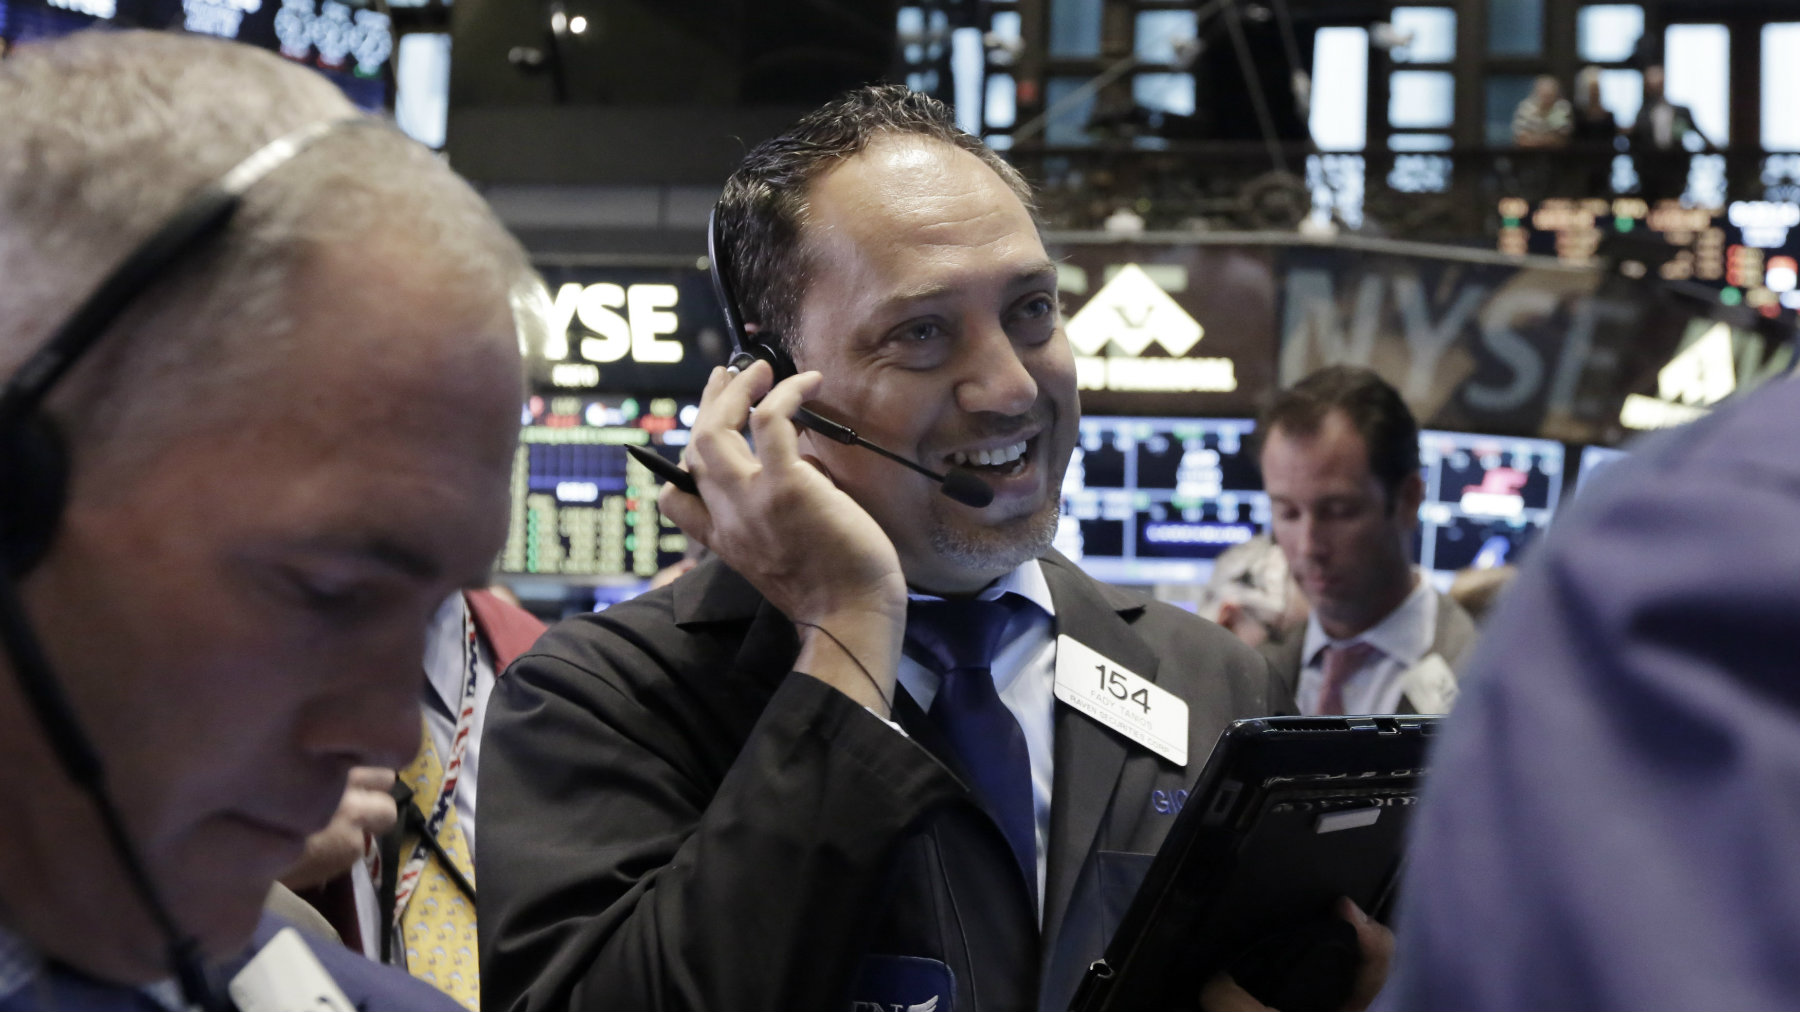 Trader Fady Tanios, center, works on the floor of the New York Stock Exchange, Thursday, June 18, 2015. U.S. stocks moved higher in early trading Thursday, extending gains a day after the Federal Reserve left interest rates unchanged from historically low levels. Health care stocks were among the biggest gainers. (AP Photo/Richard Drew)